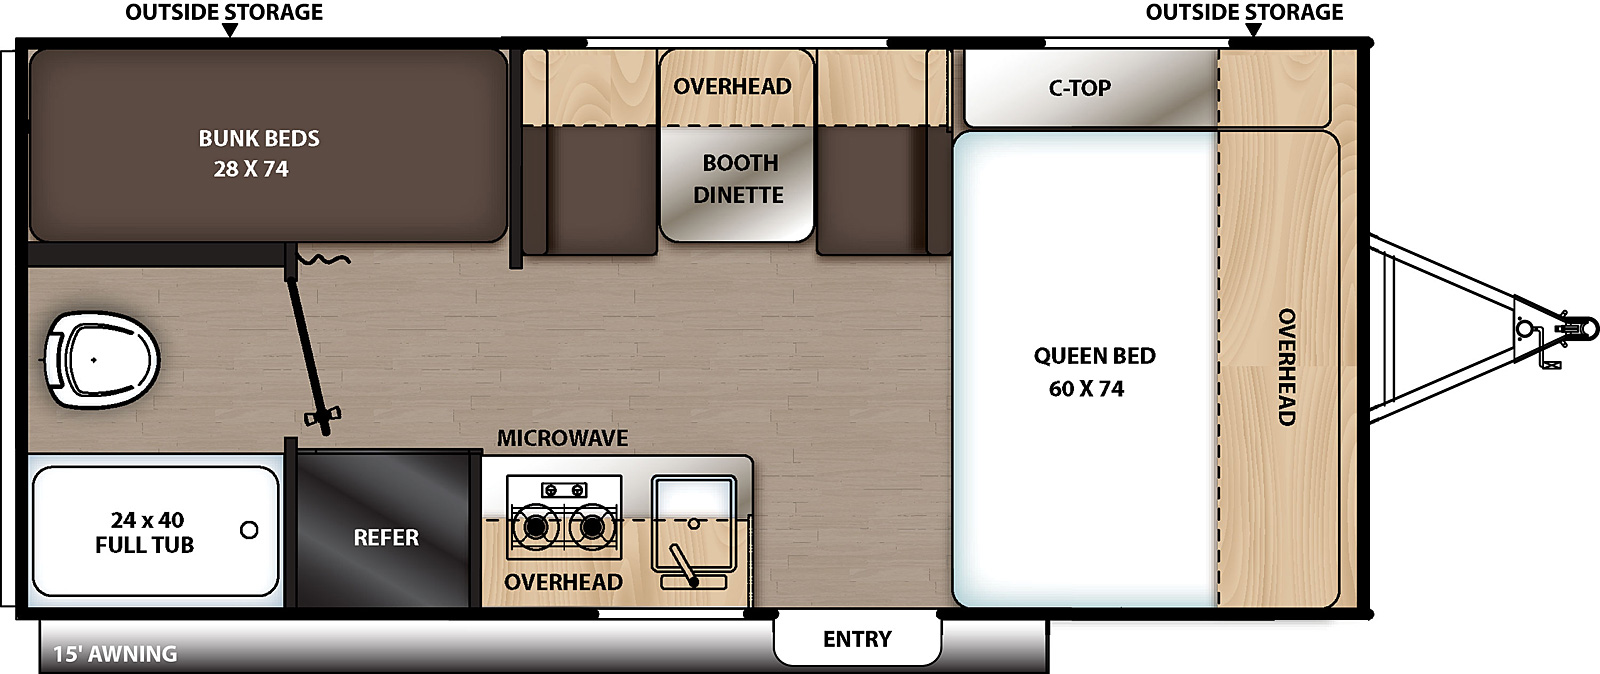 Floorplan for Catalina Summit Series 7 Travel Trailer model 174BH